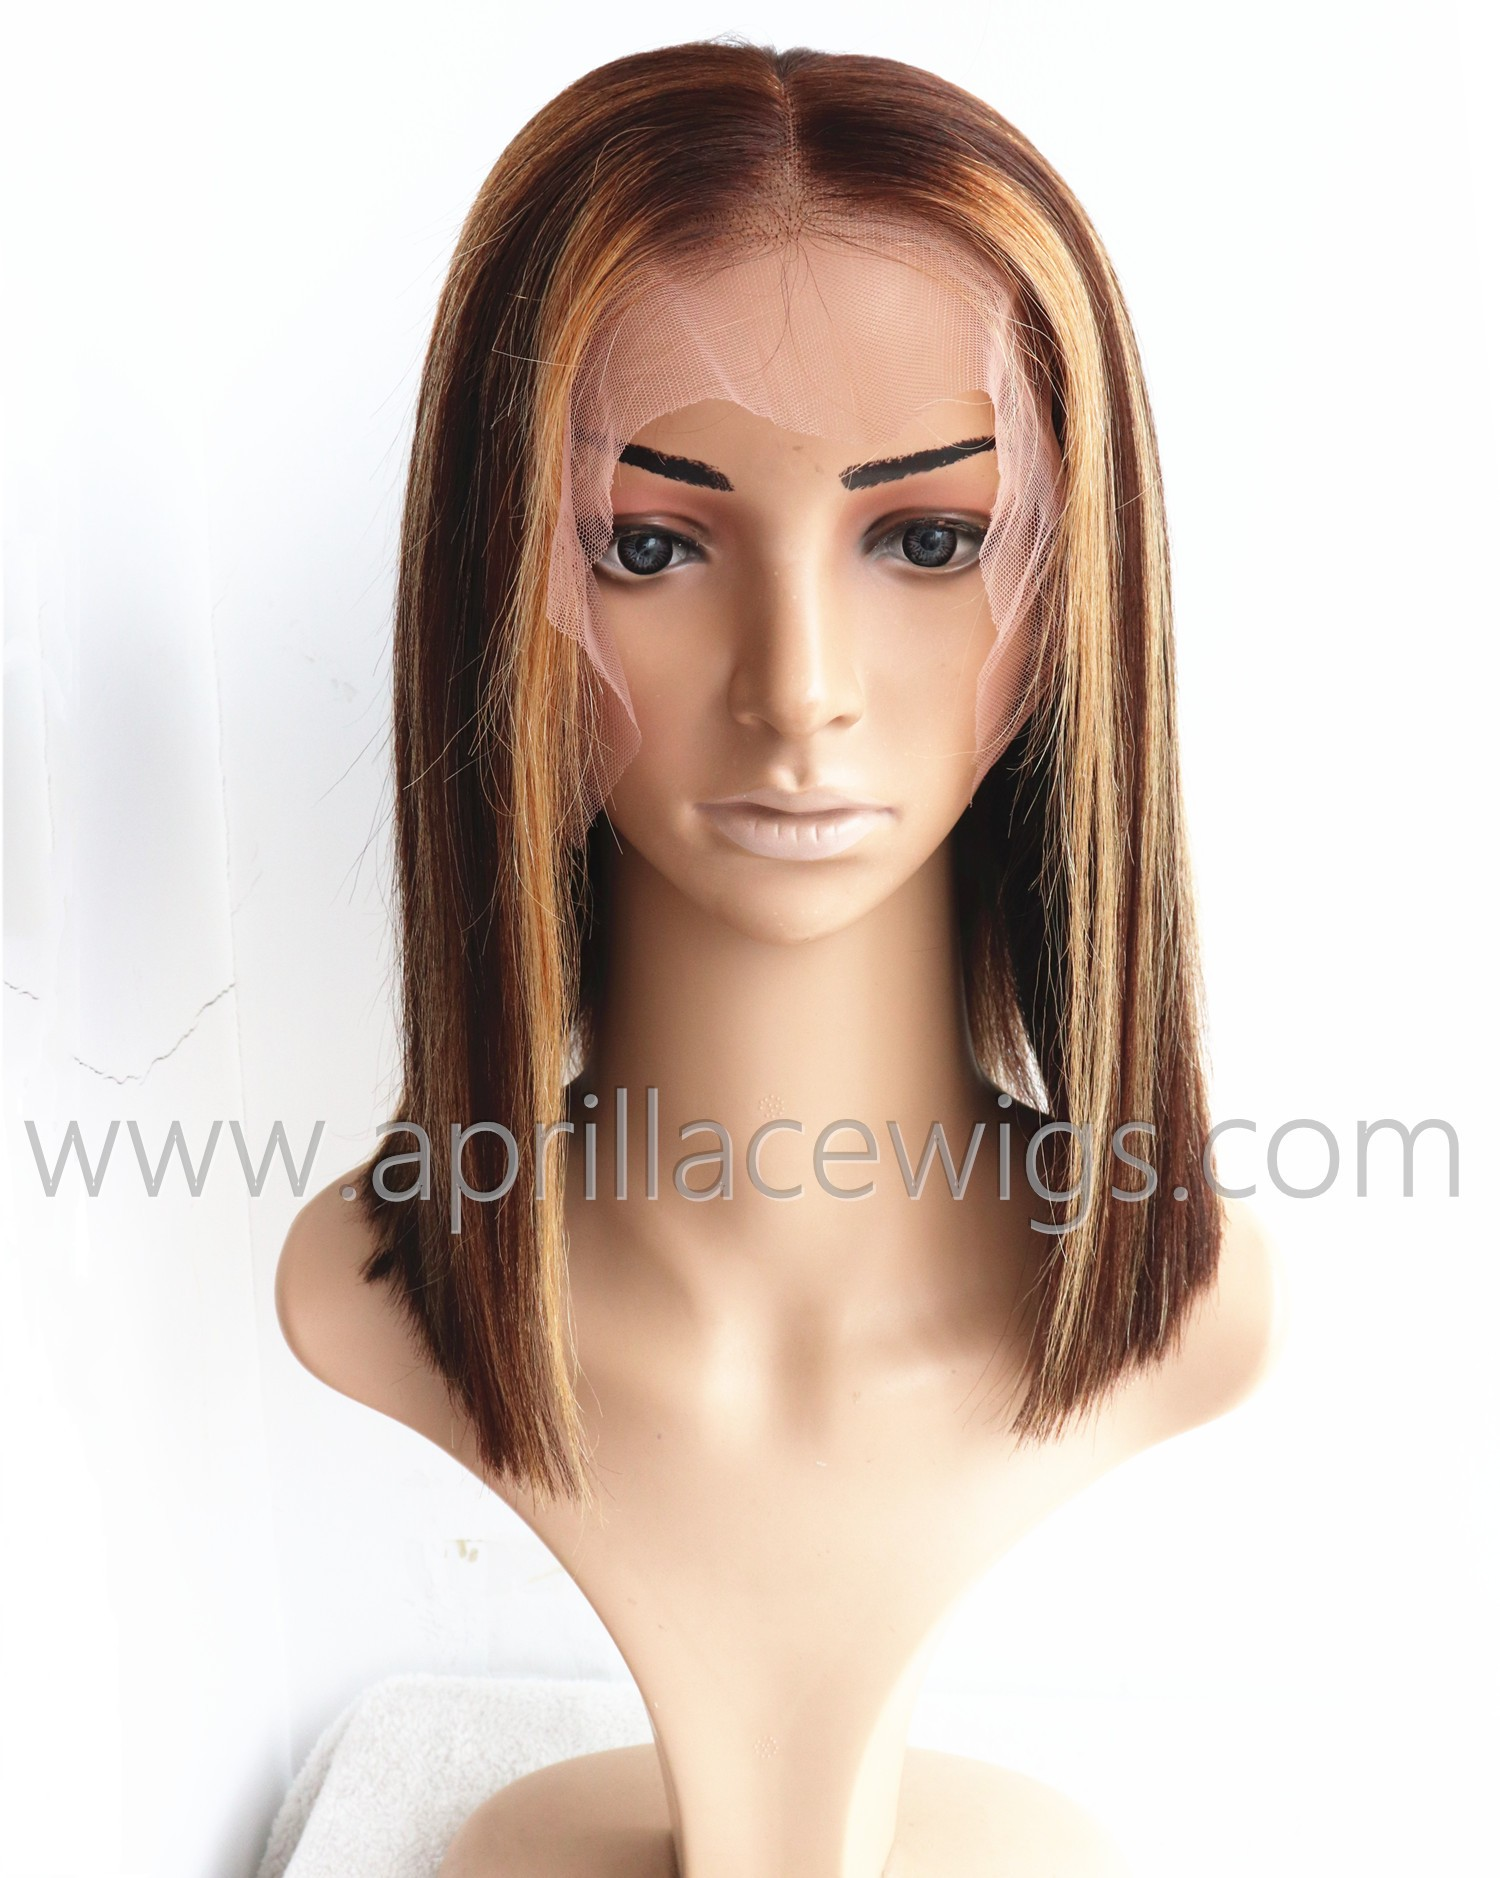 color 4 with 27 highlight brown 13x6 lace front wig 150% density bob lace wig